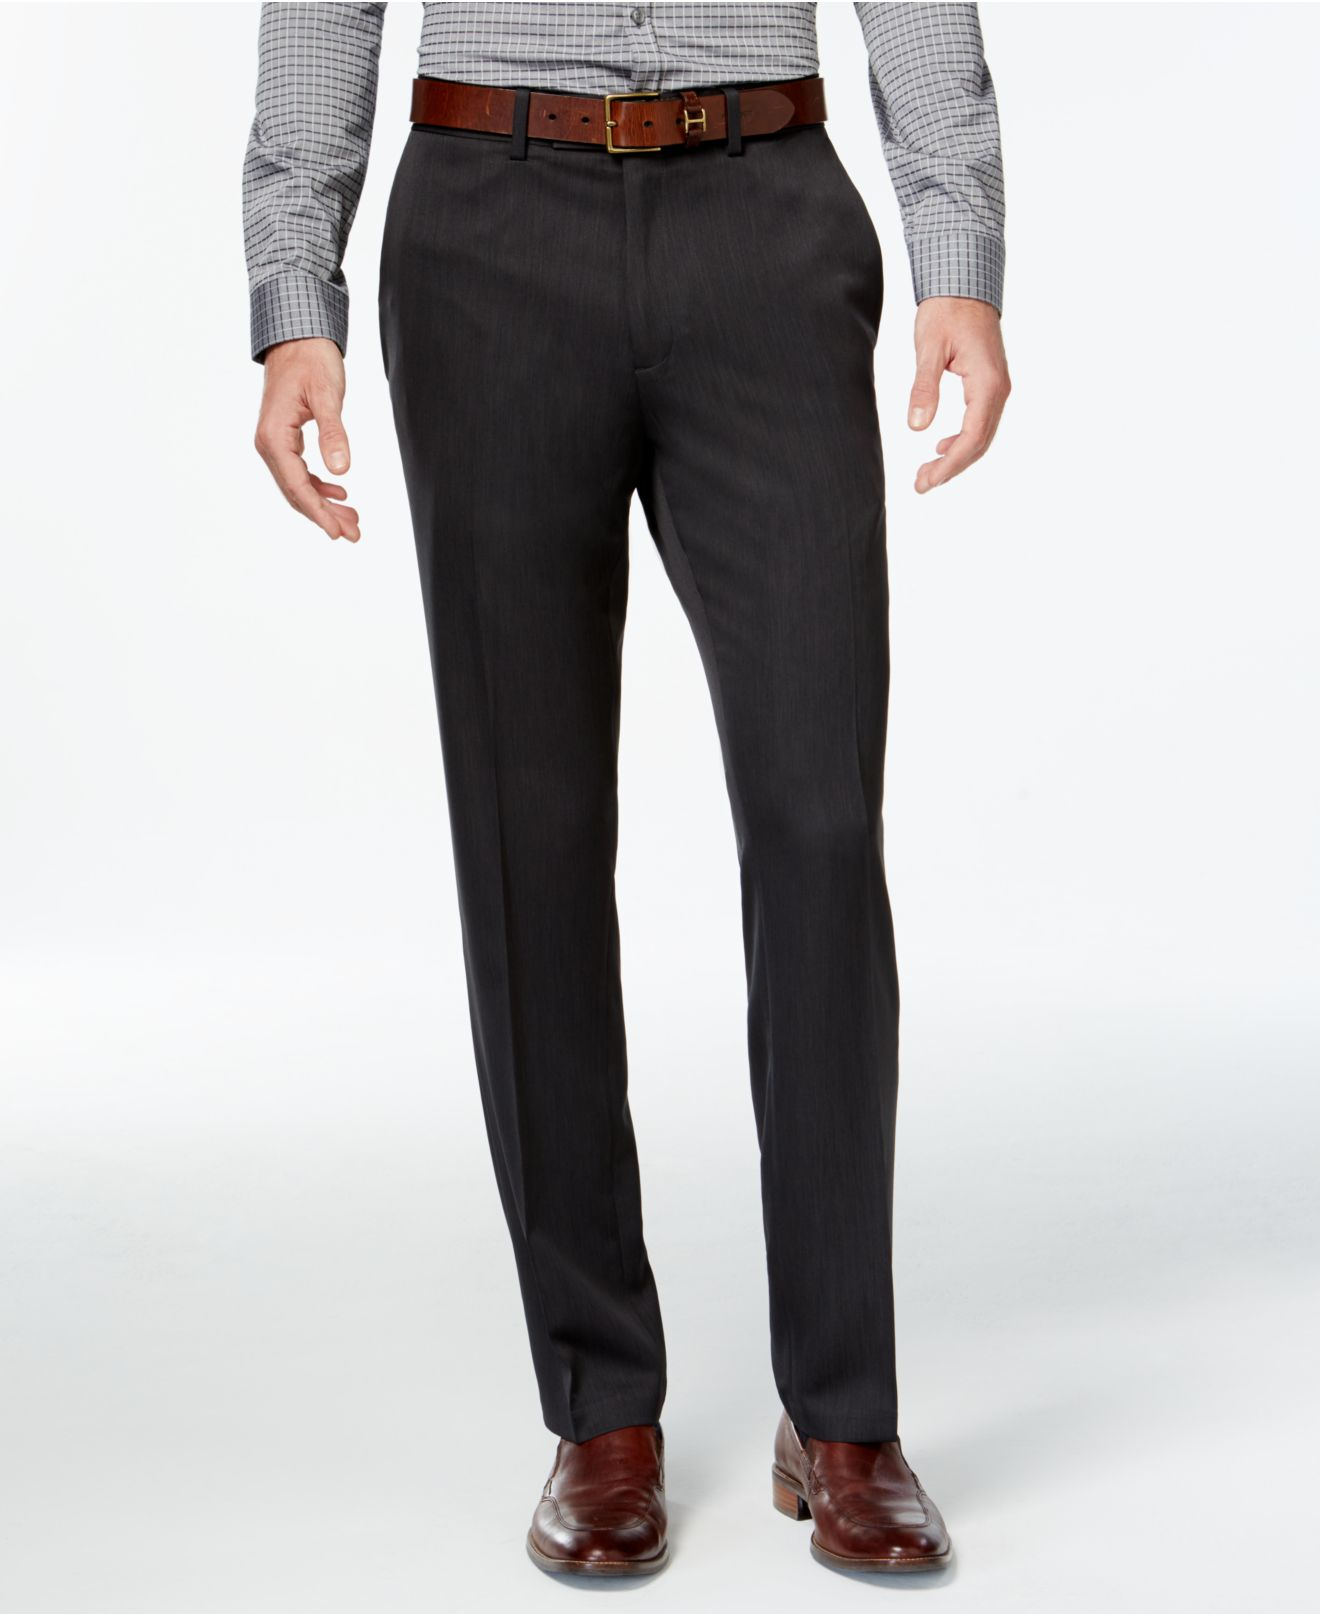 Men's Slim-Fit Belted Dress Pants. Pair these dress pants with a white shirt, sport coat, and Oxford shoes to create a look great for a business meeting/5(67).